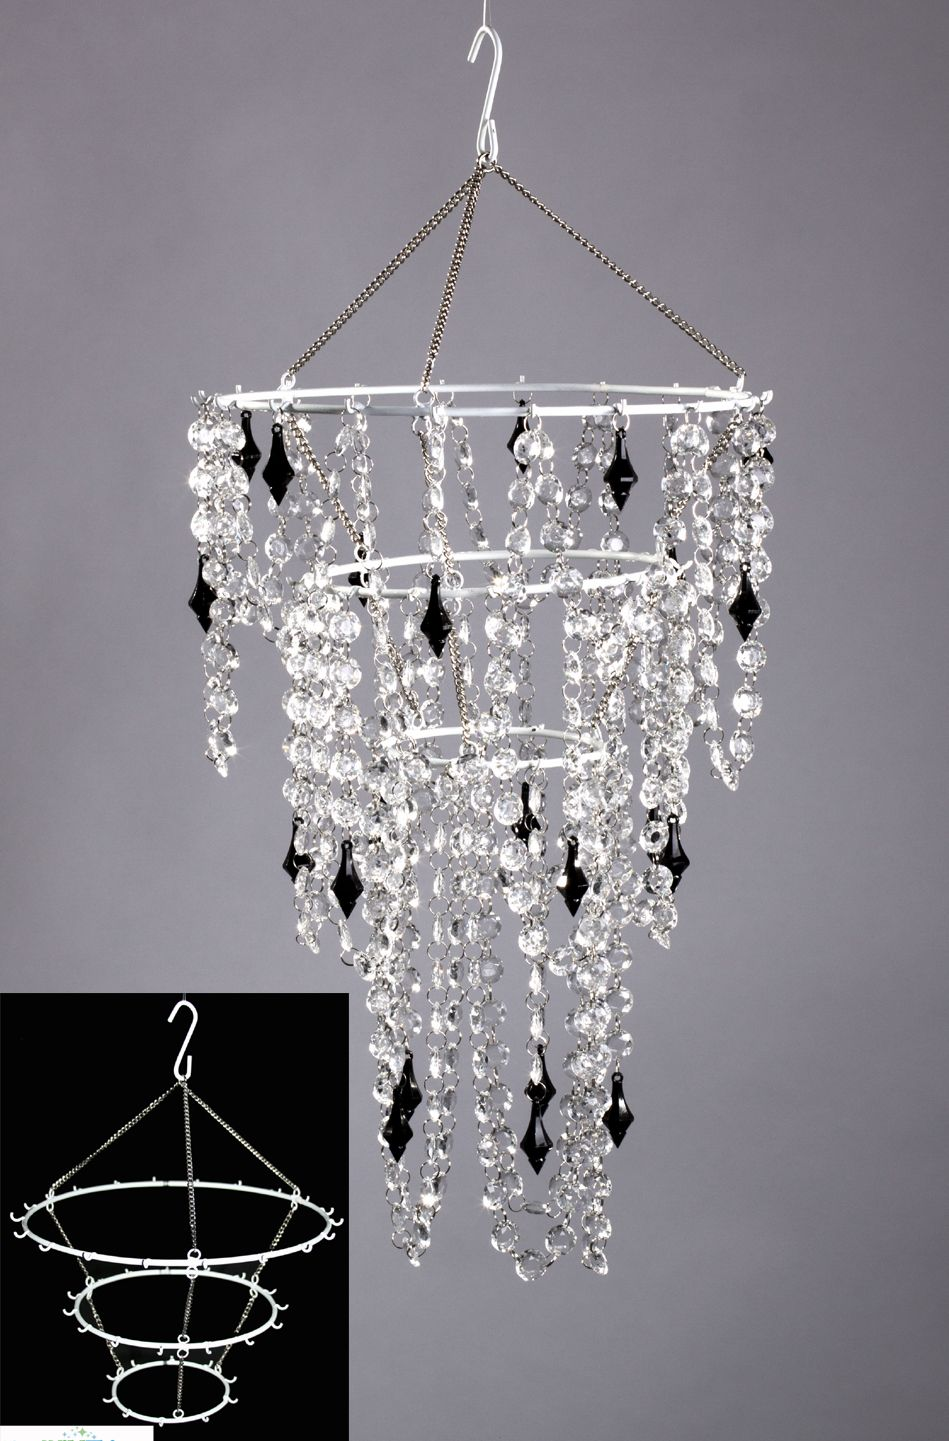 Create your very own chandelier decoration using our white metal create your very own chandelier decoration using our white metal frame just add your own aloadofball Images